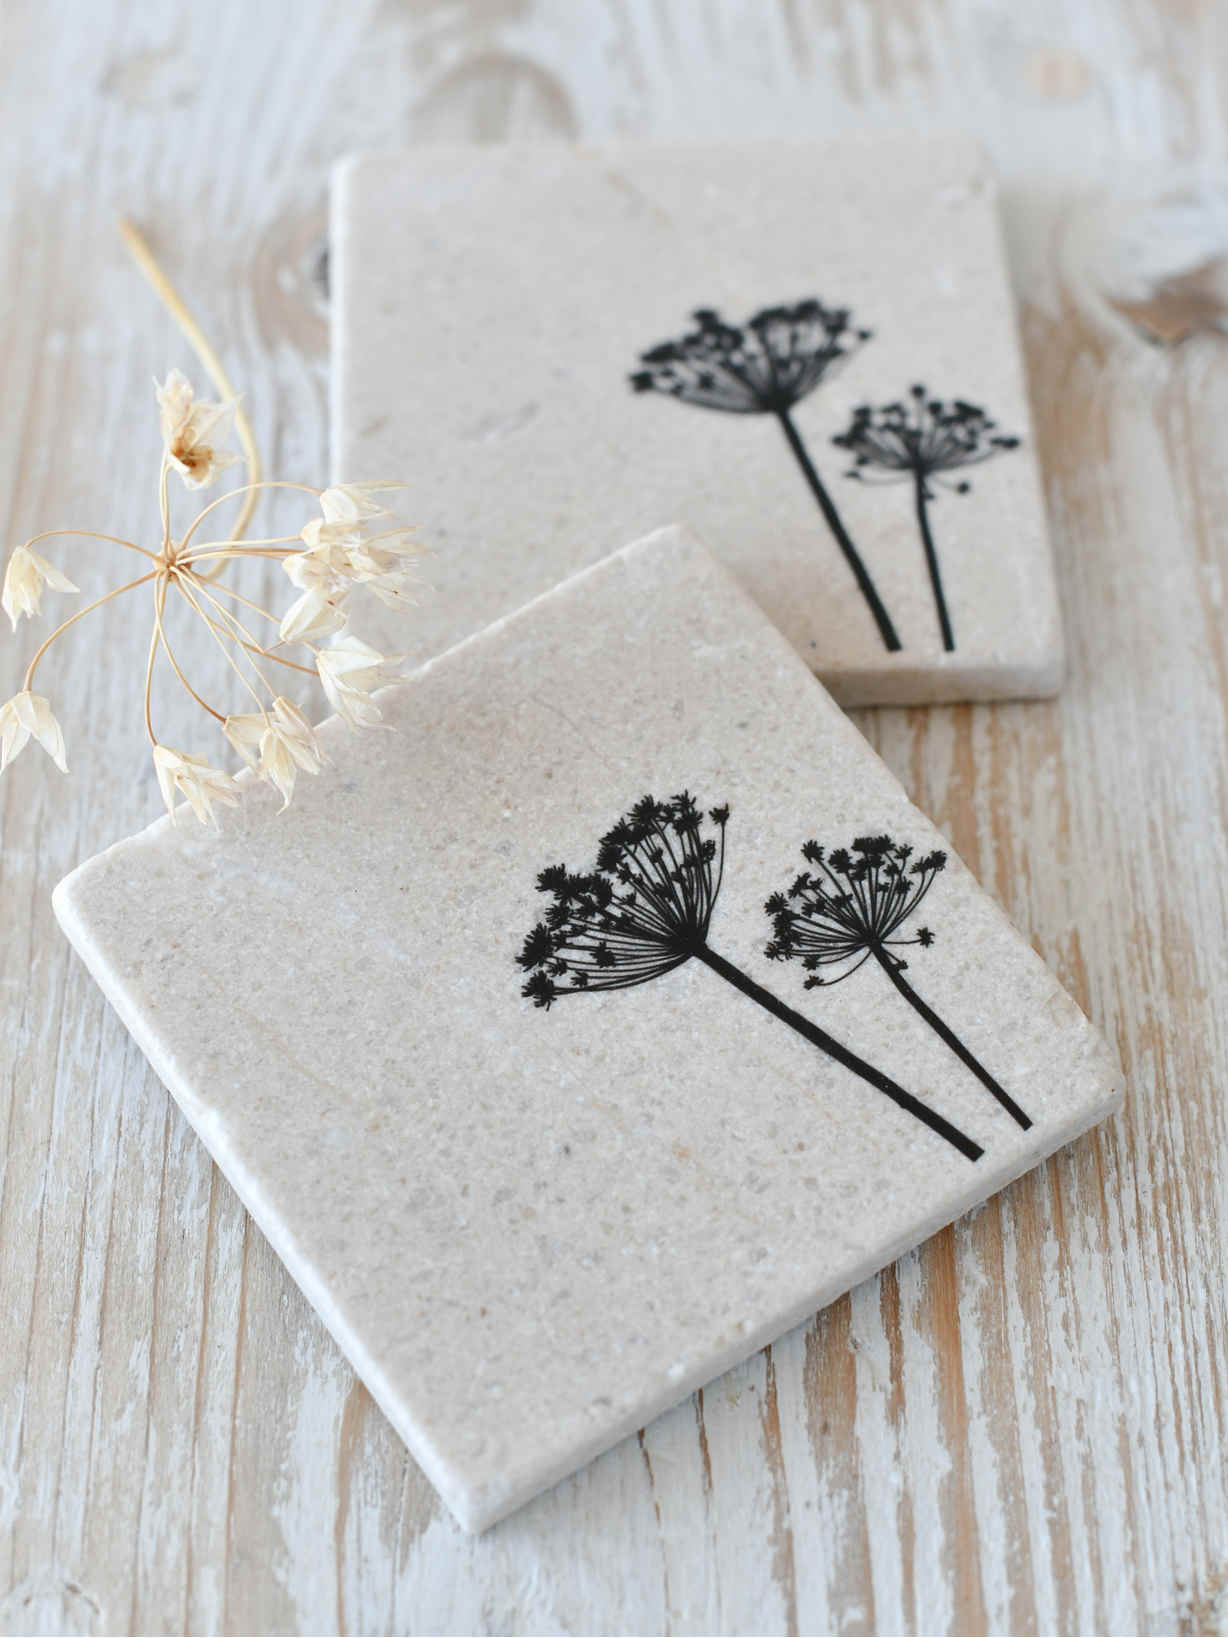 Nordic House Natural Stone Coasters - Cow Parsley